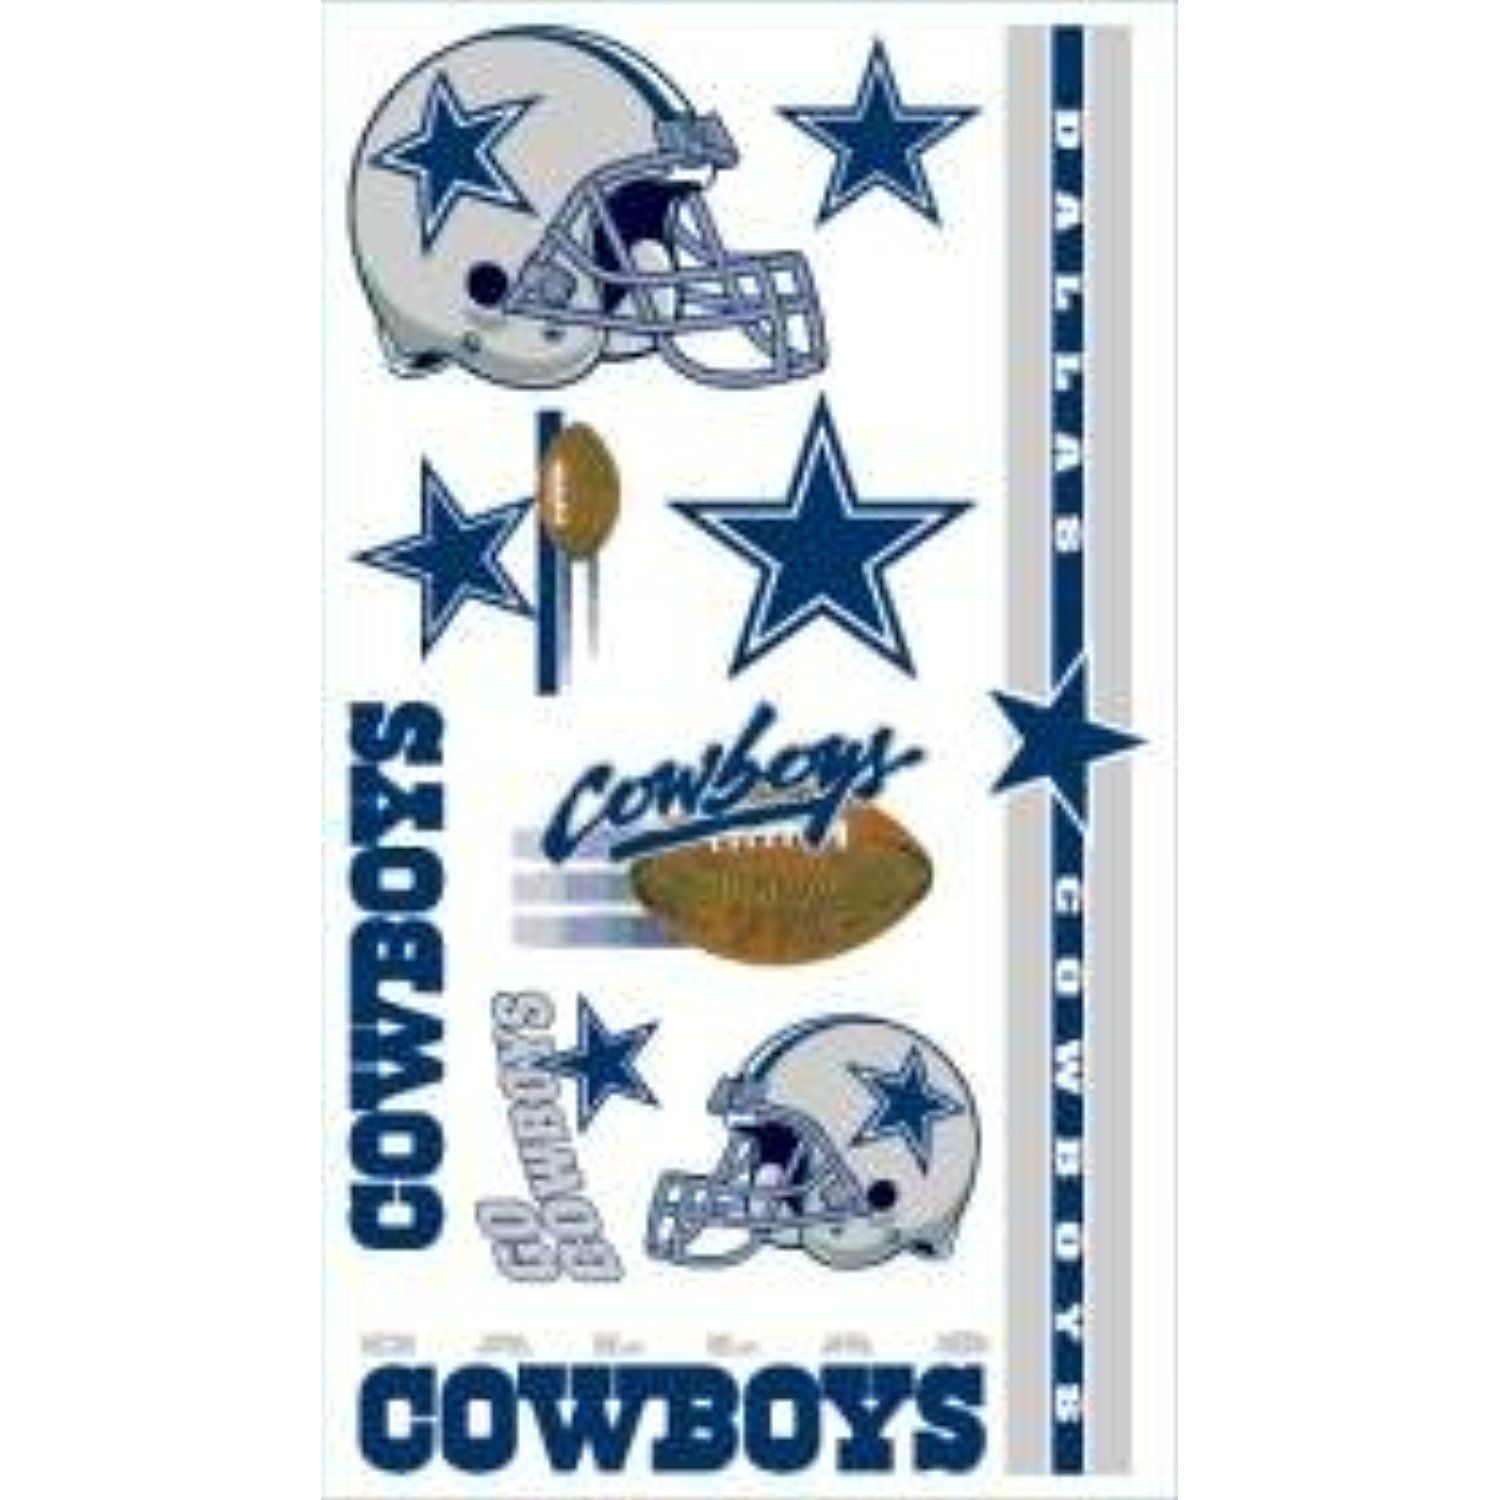 Dallas cowboys temporary tattoos easily removed with